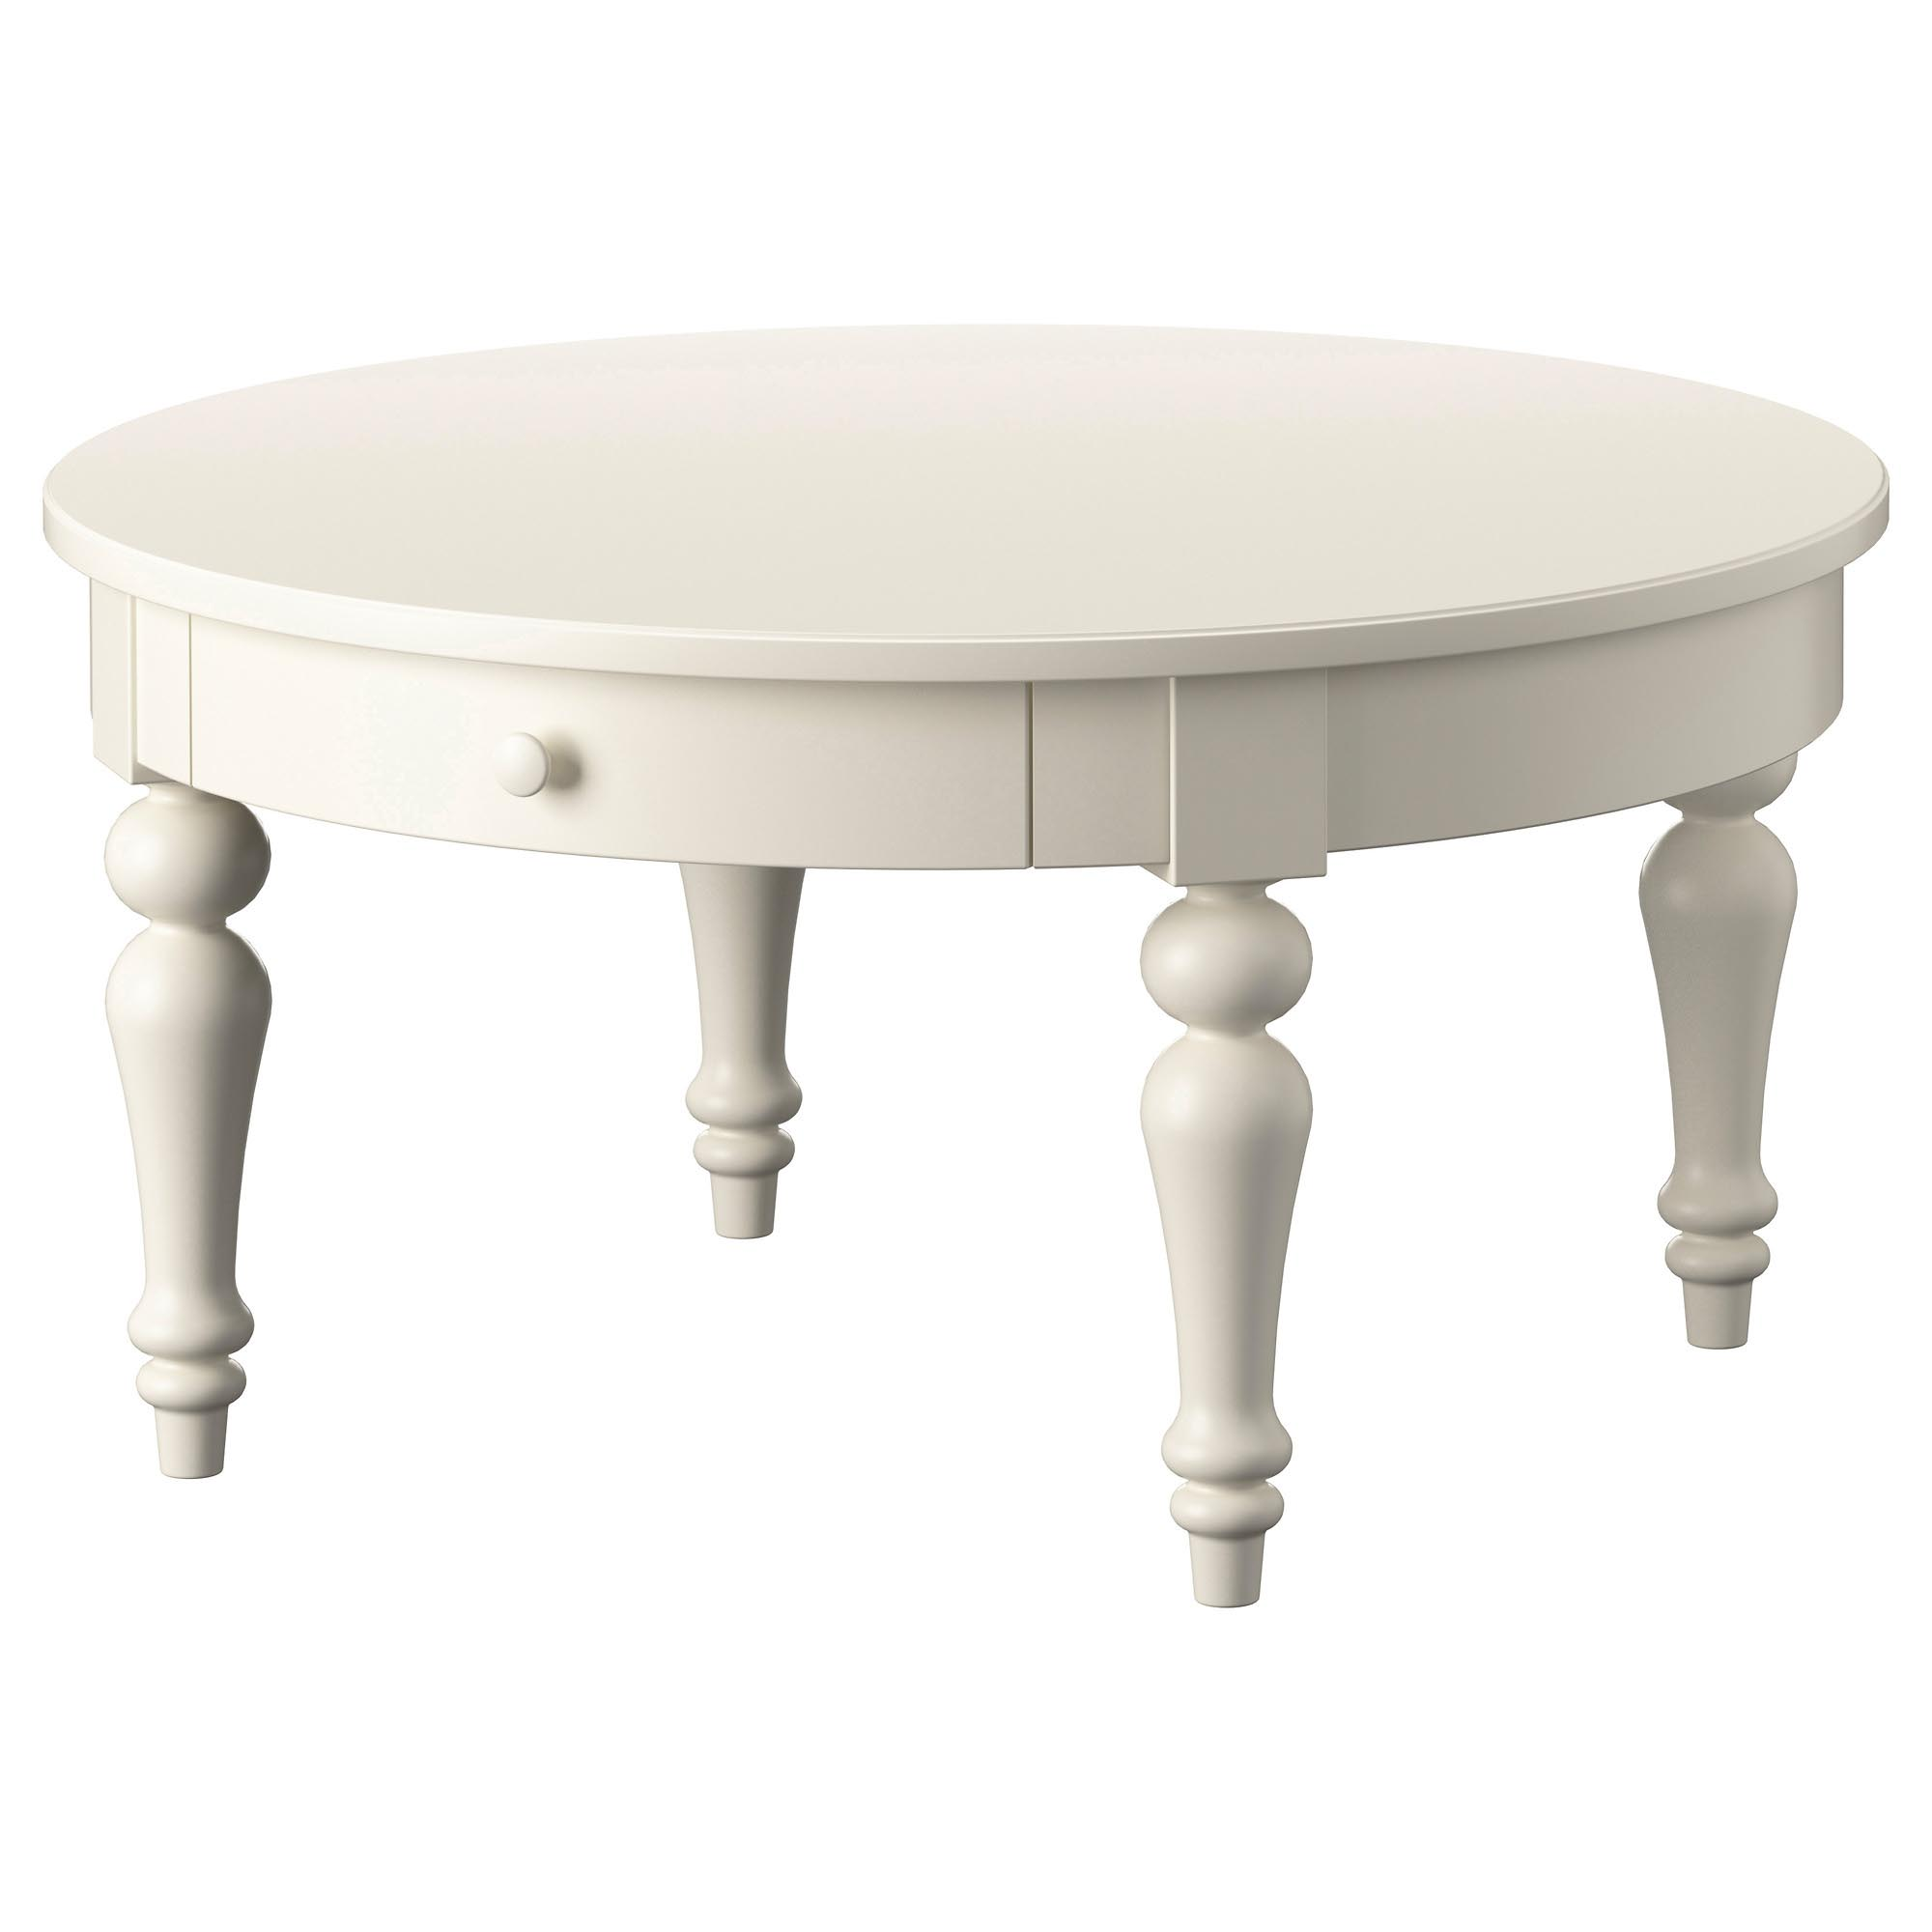 Round White Coffee Table